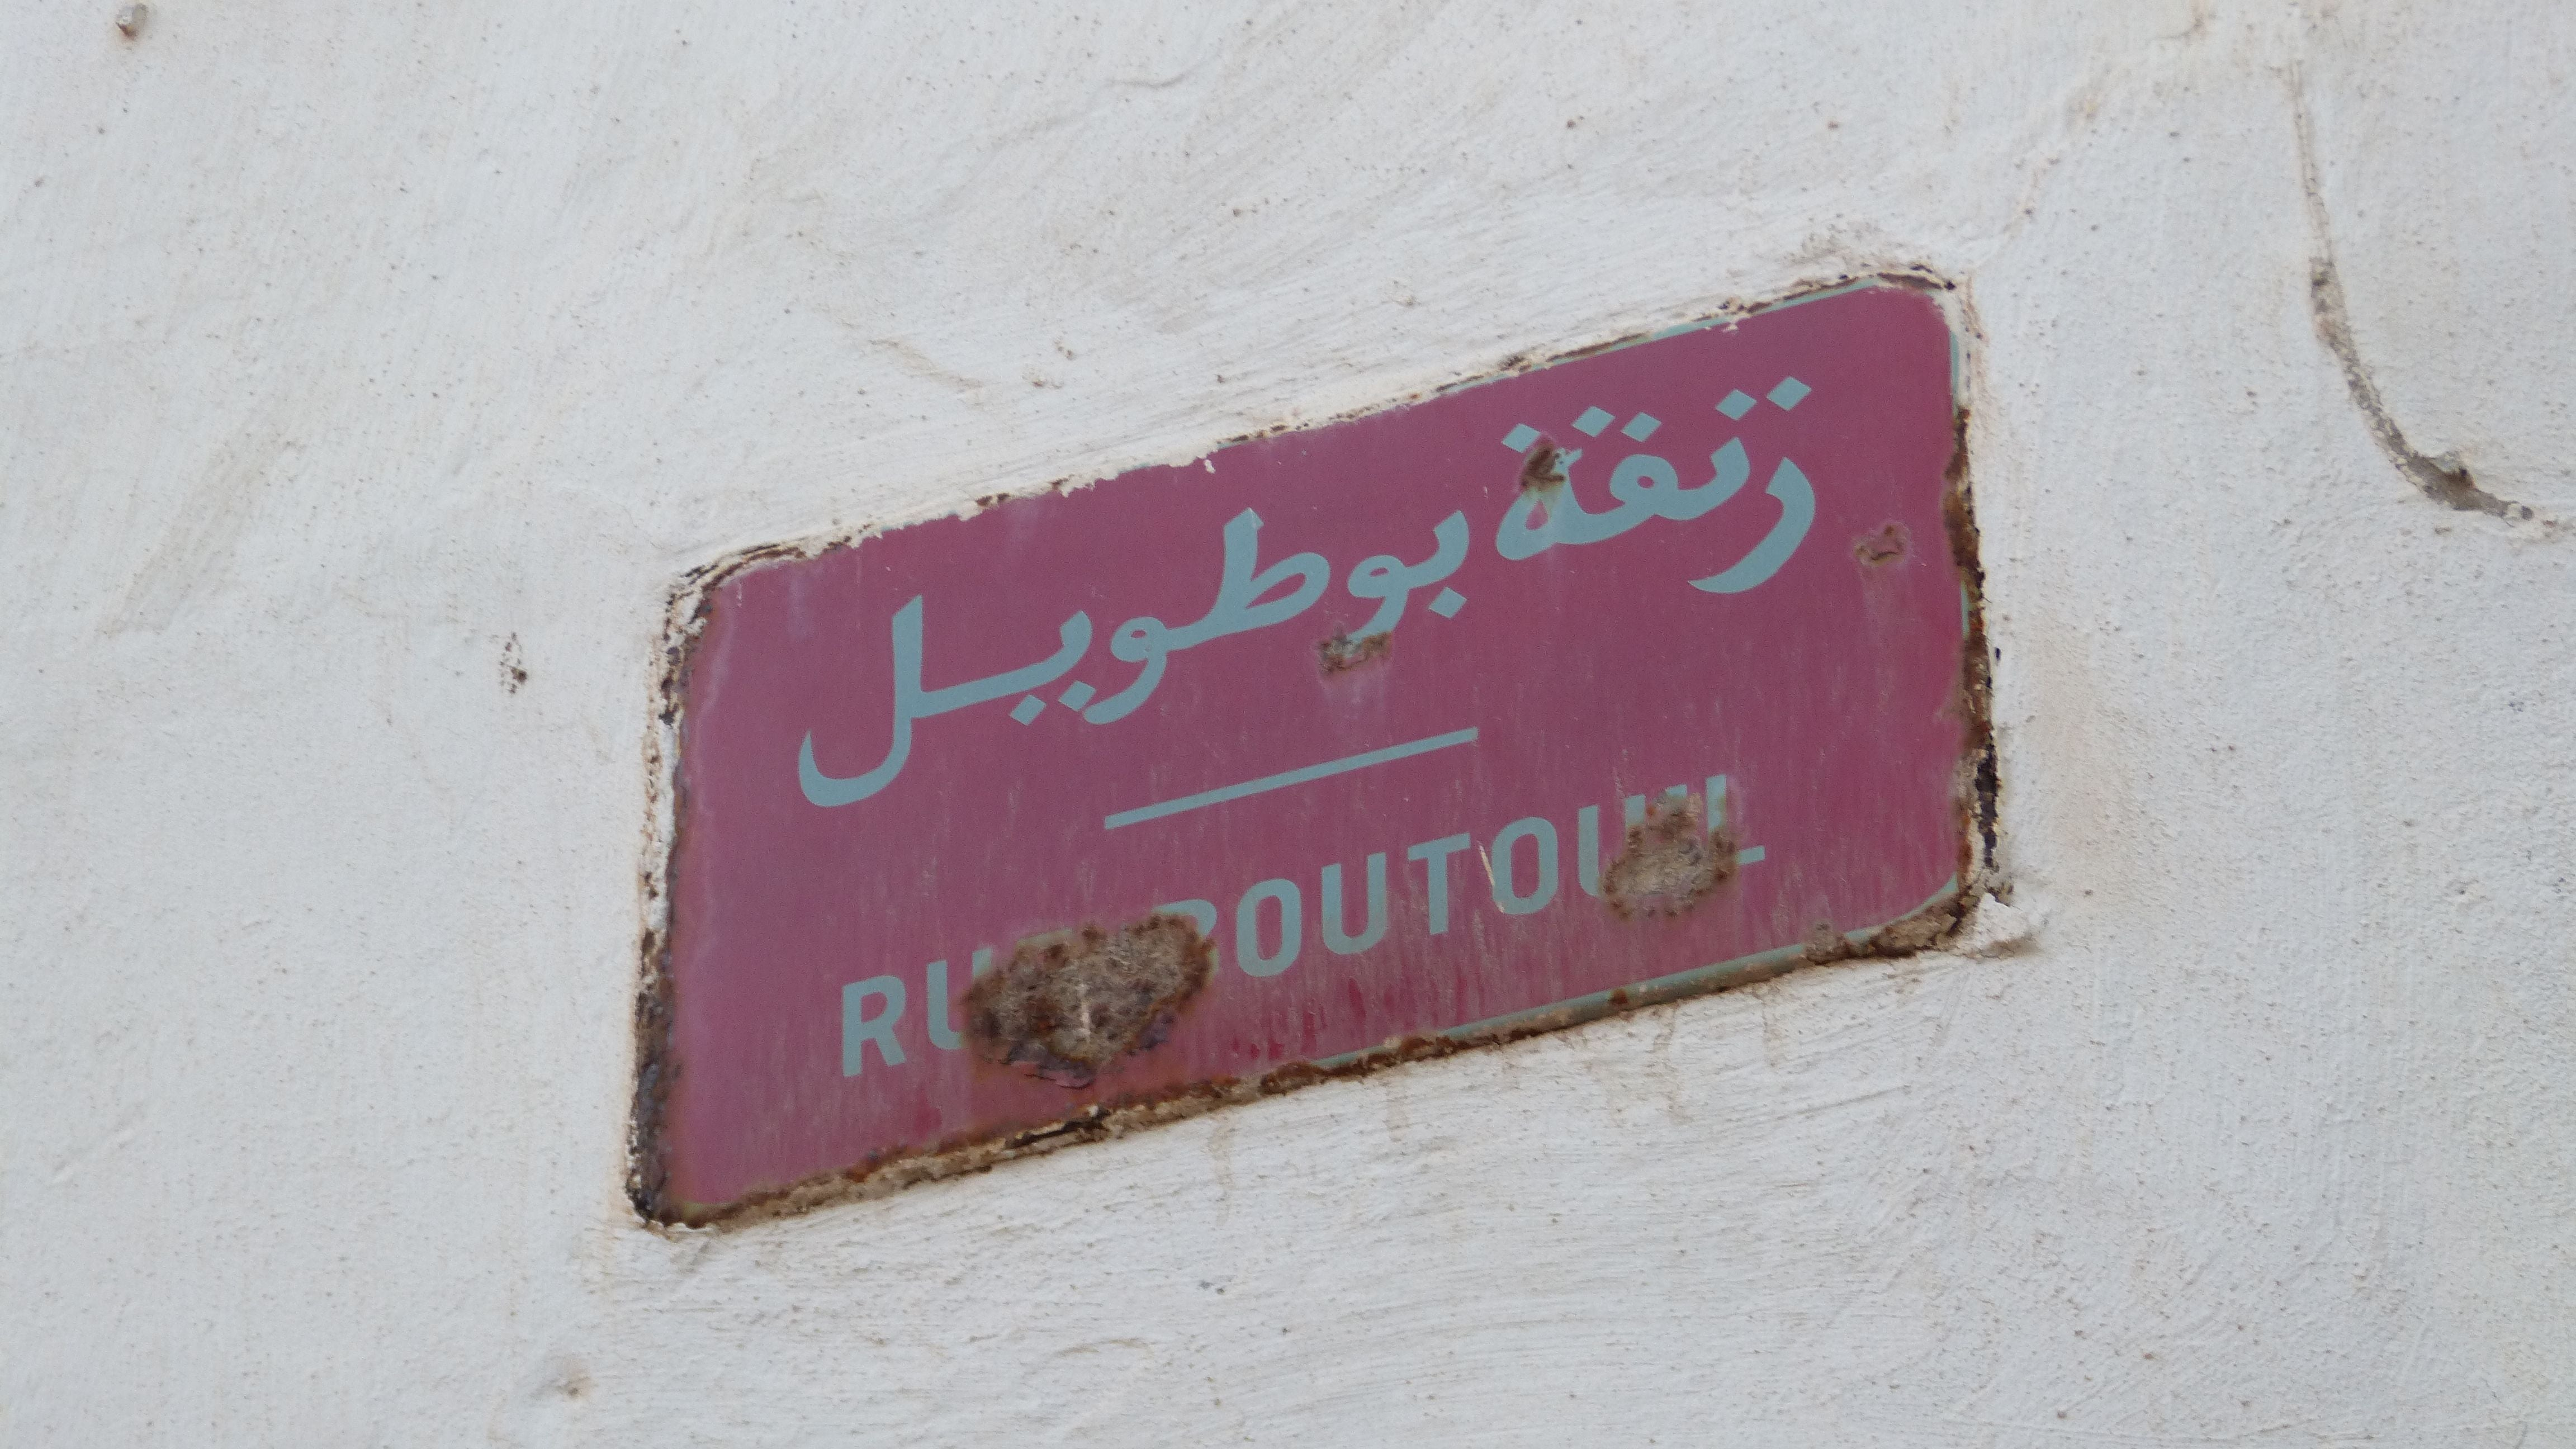 Signage in Rue Boutouil